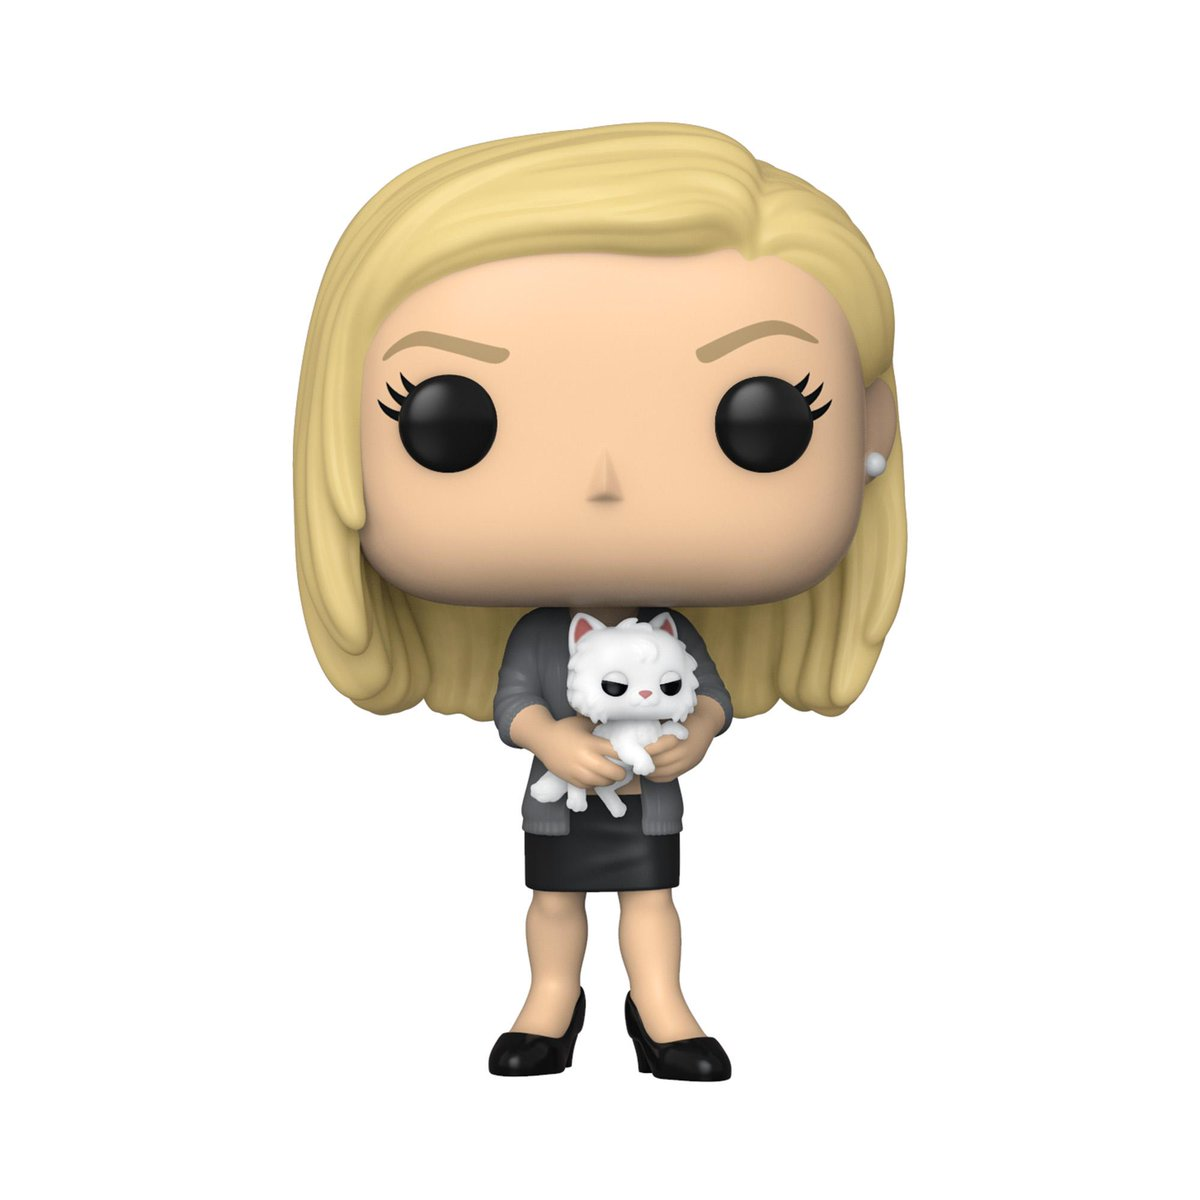 RT & follow @OriginalFunko for the chance to WIN this @GameStop exclusive Angela Martin Pop!  #Funko #Funkogiveaway #theoffice #FunkoPop